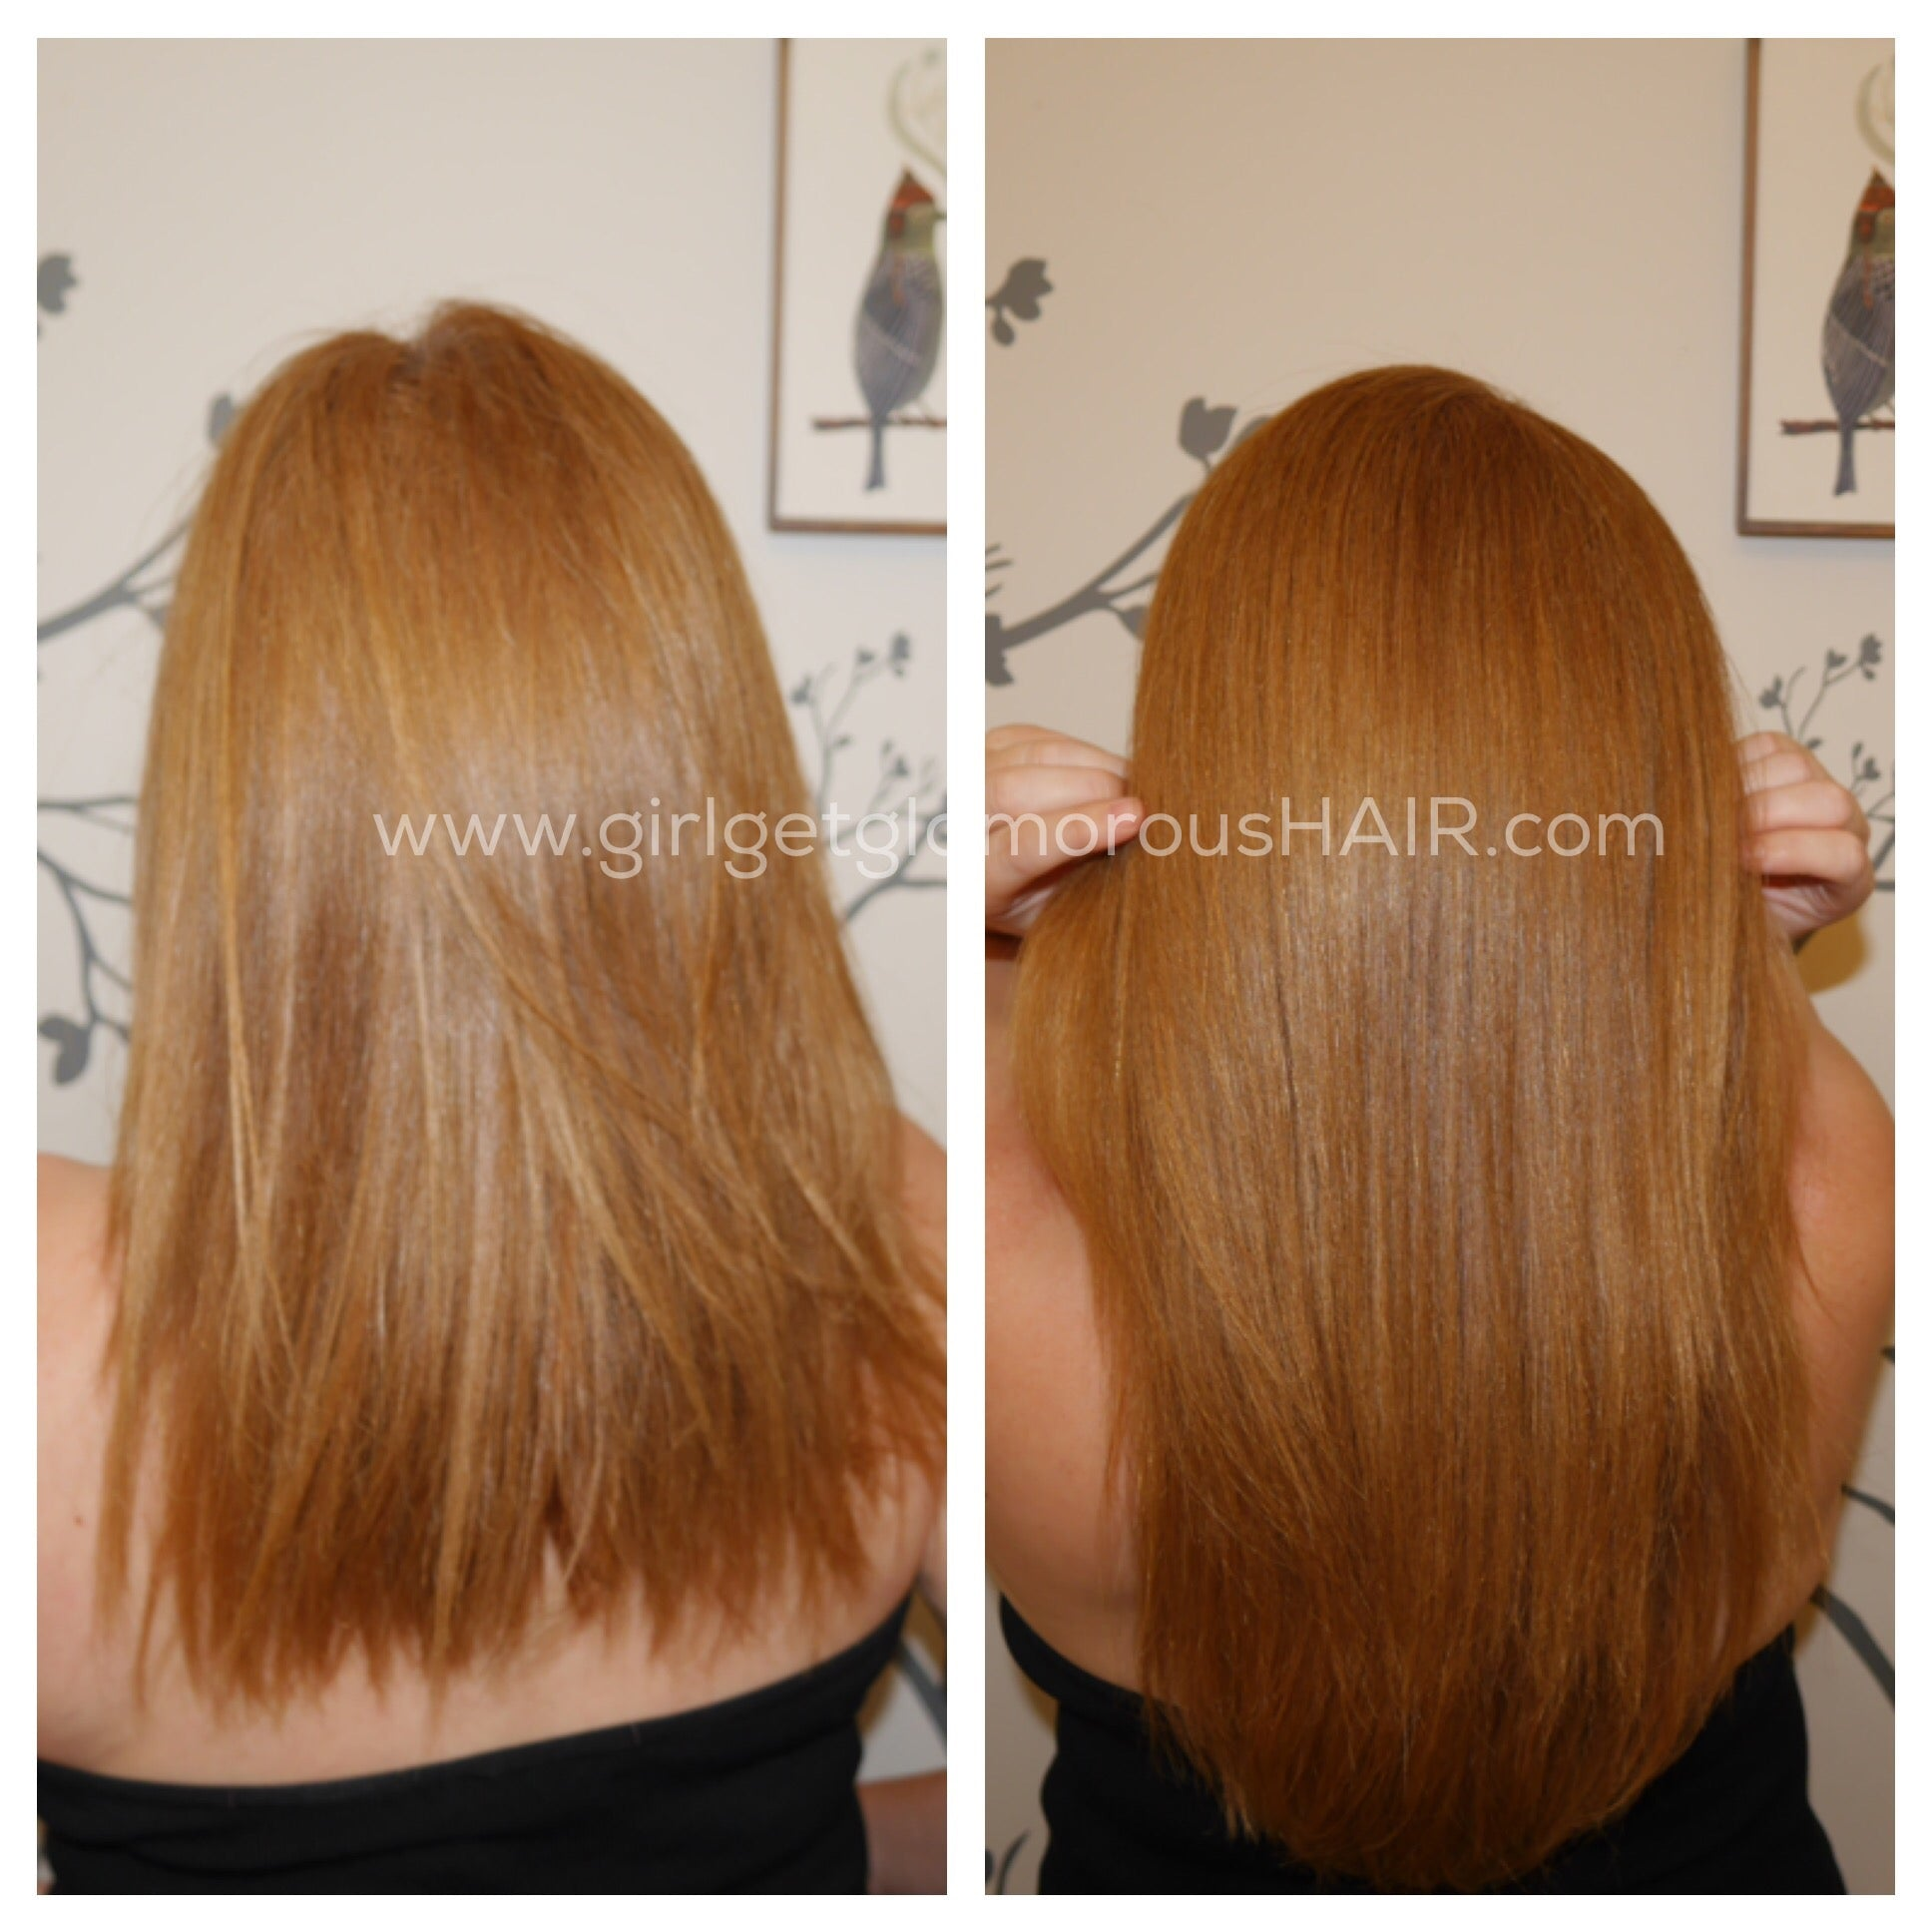 What Are Double Drawn Vs Single Drawn Hair Extensions